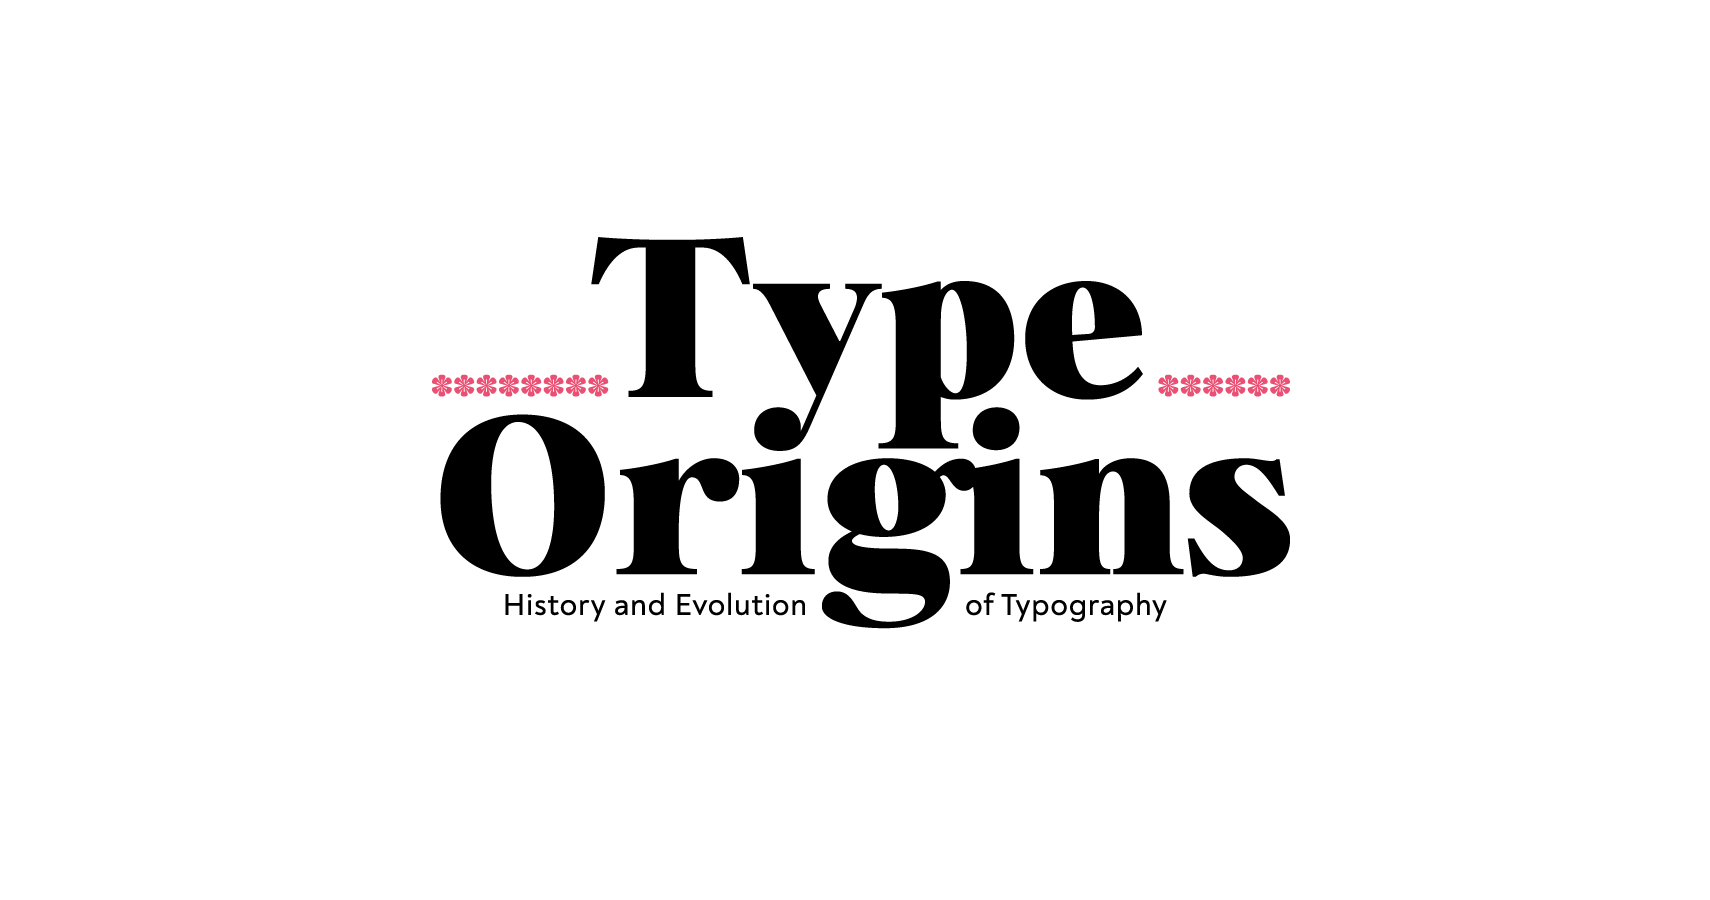 History and Evolution of Typography